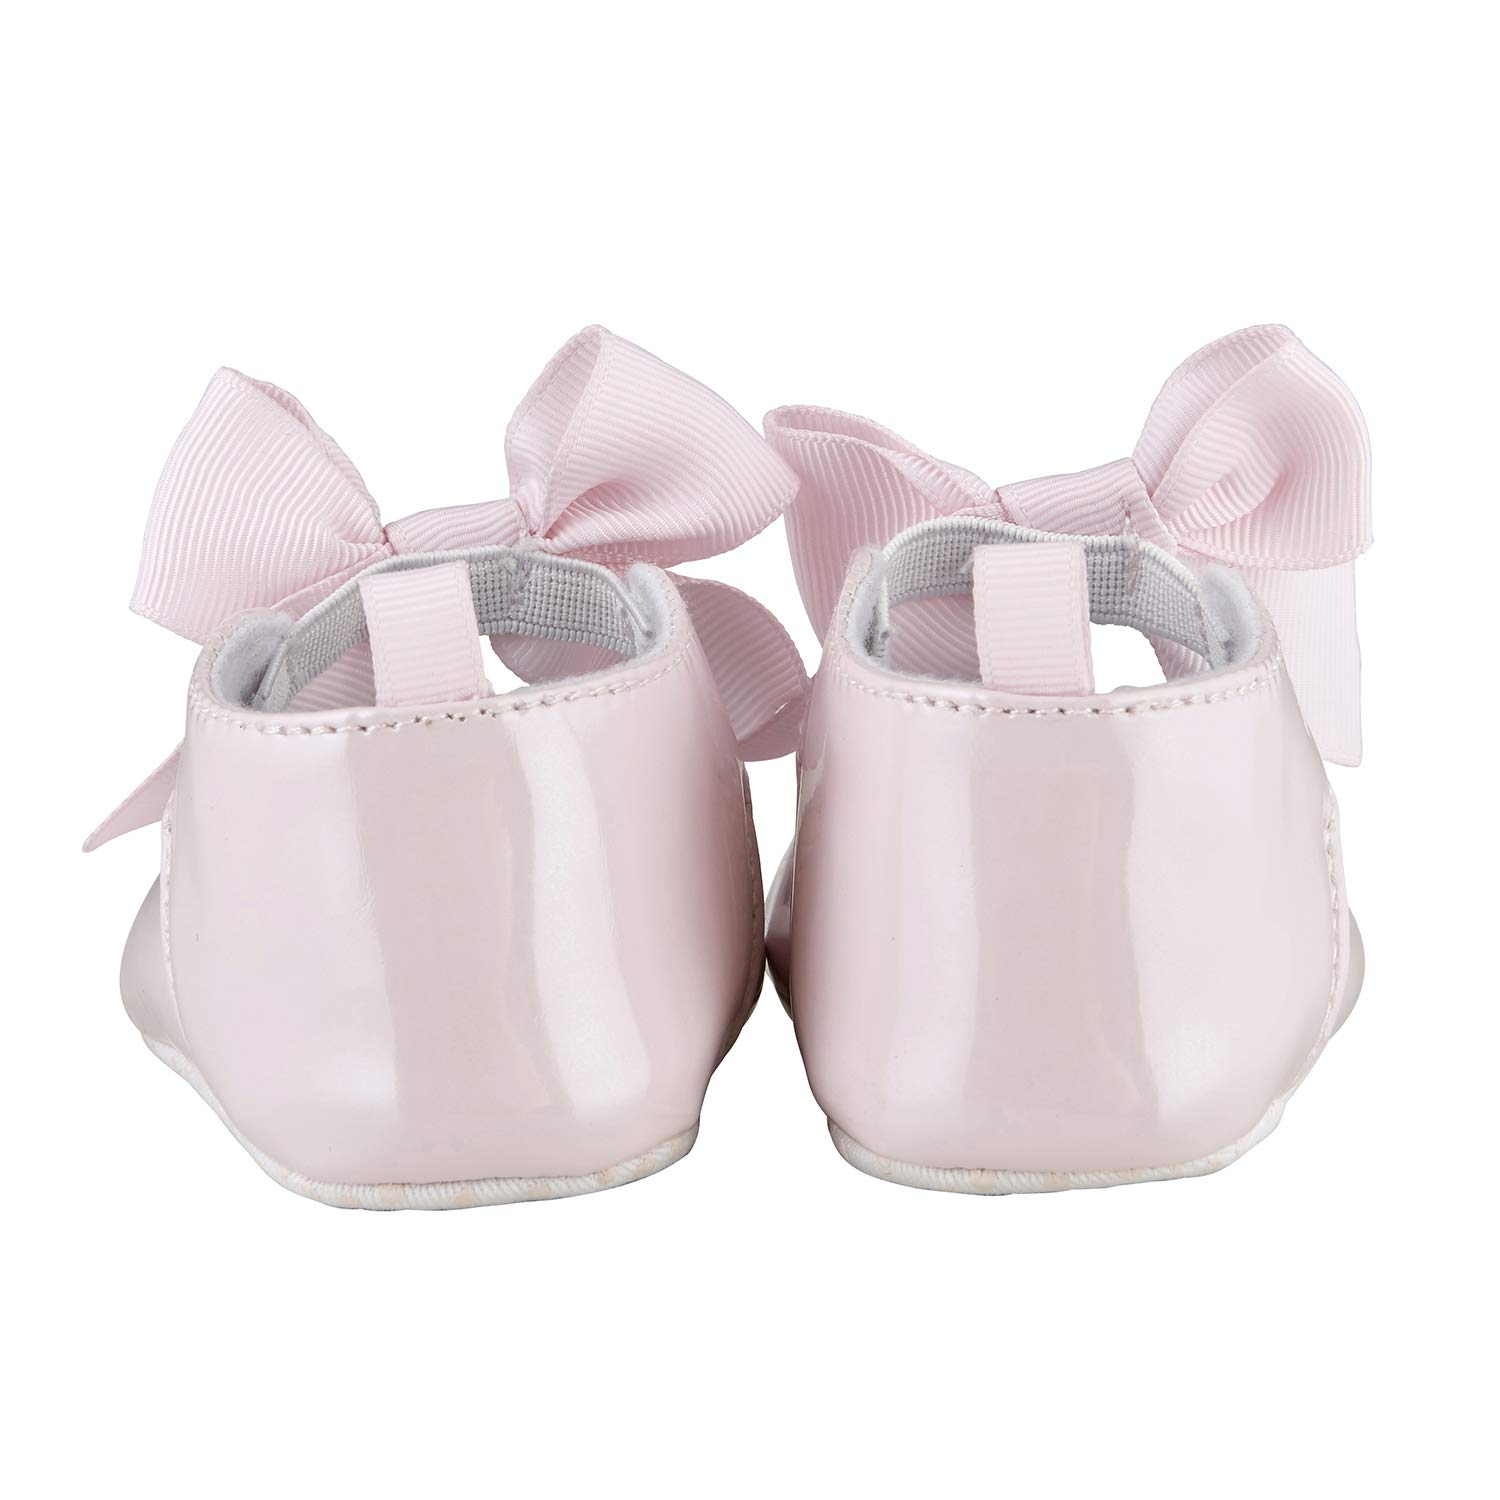 Gold Metallic Fits 6-12 Months Stephan Baby Twinkle Toes Party Shoe-Style Foot Finders